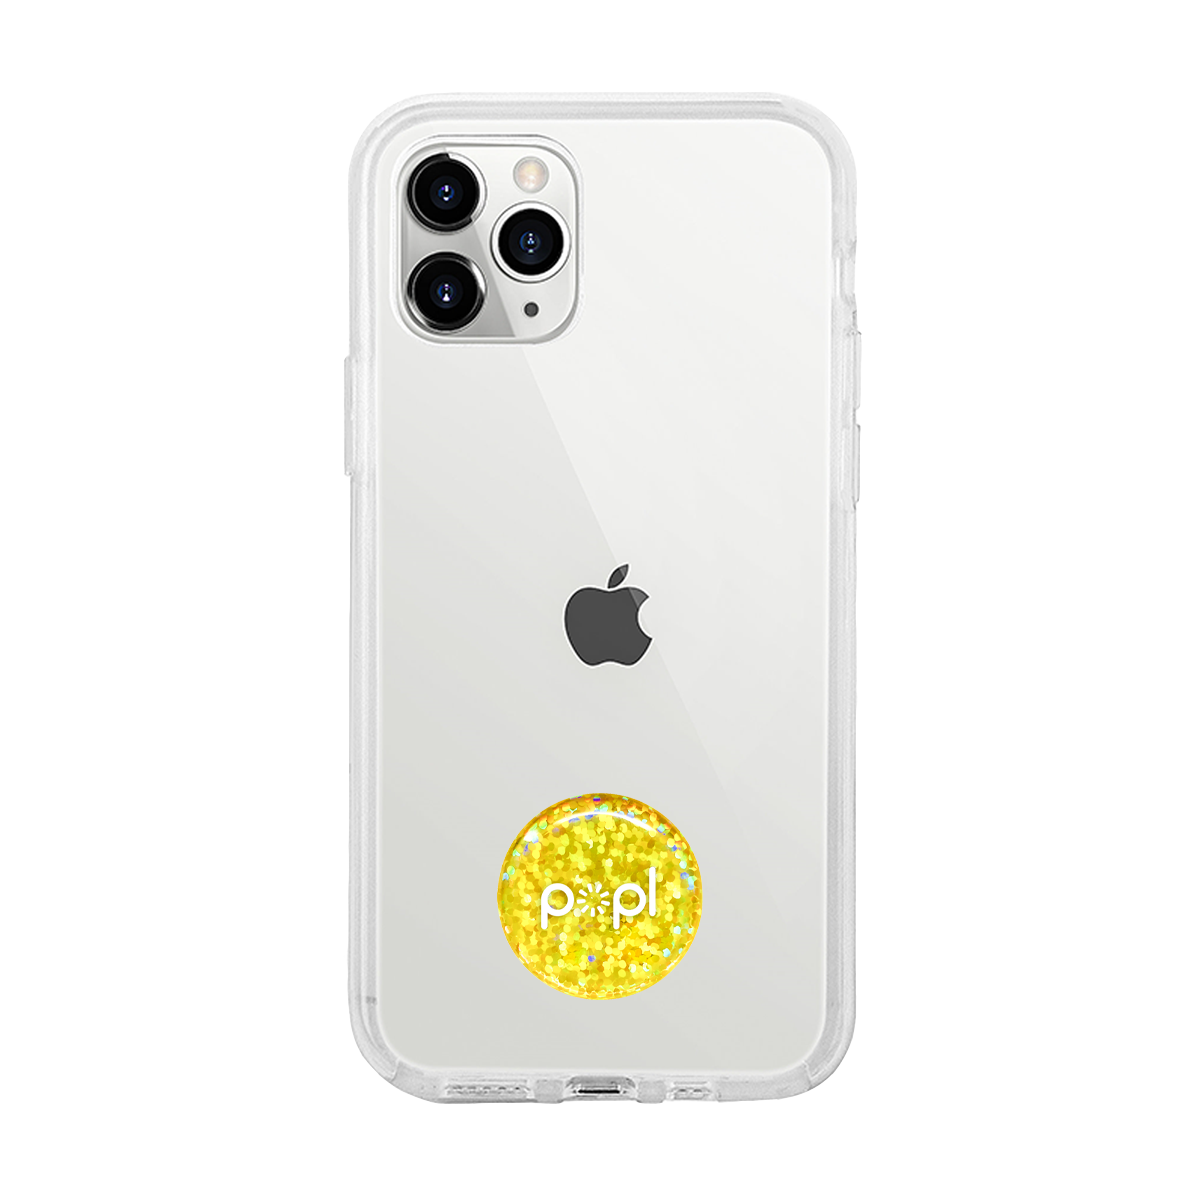 product_gold_rendercopy_1024x1024@2x.png